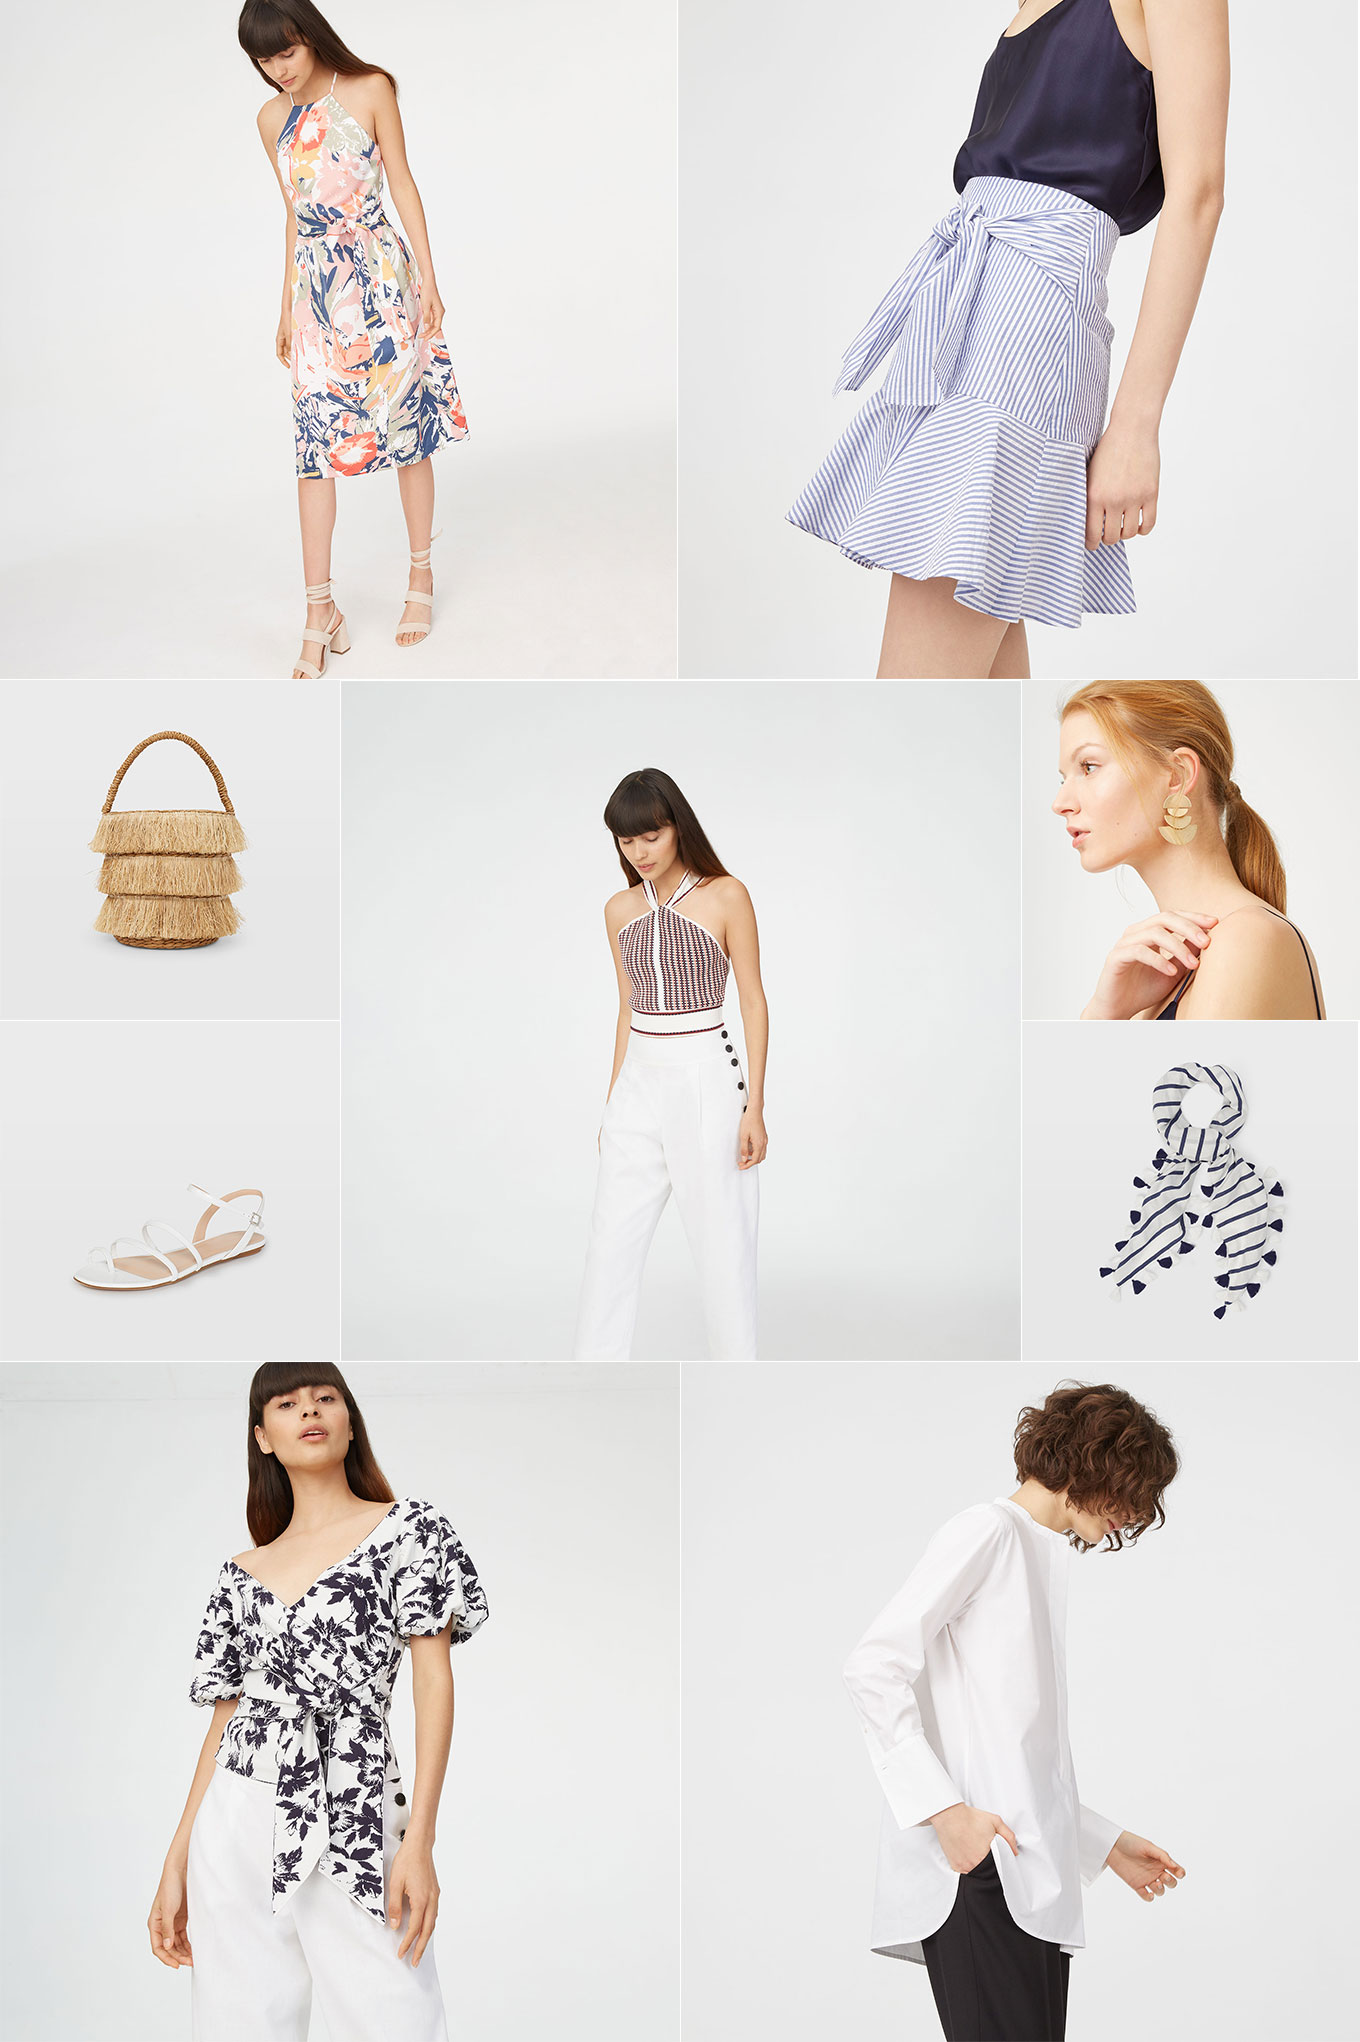 Ridgely Brode is curious what's new and finds some new things to share that are chic and cute on her blog Ridgely's Radar.